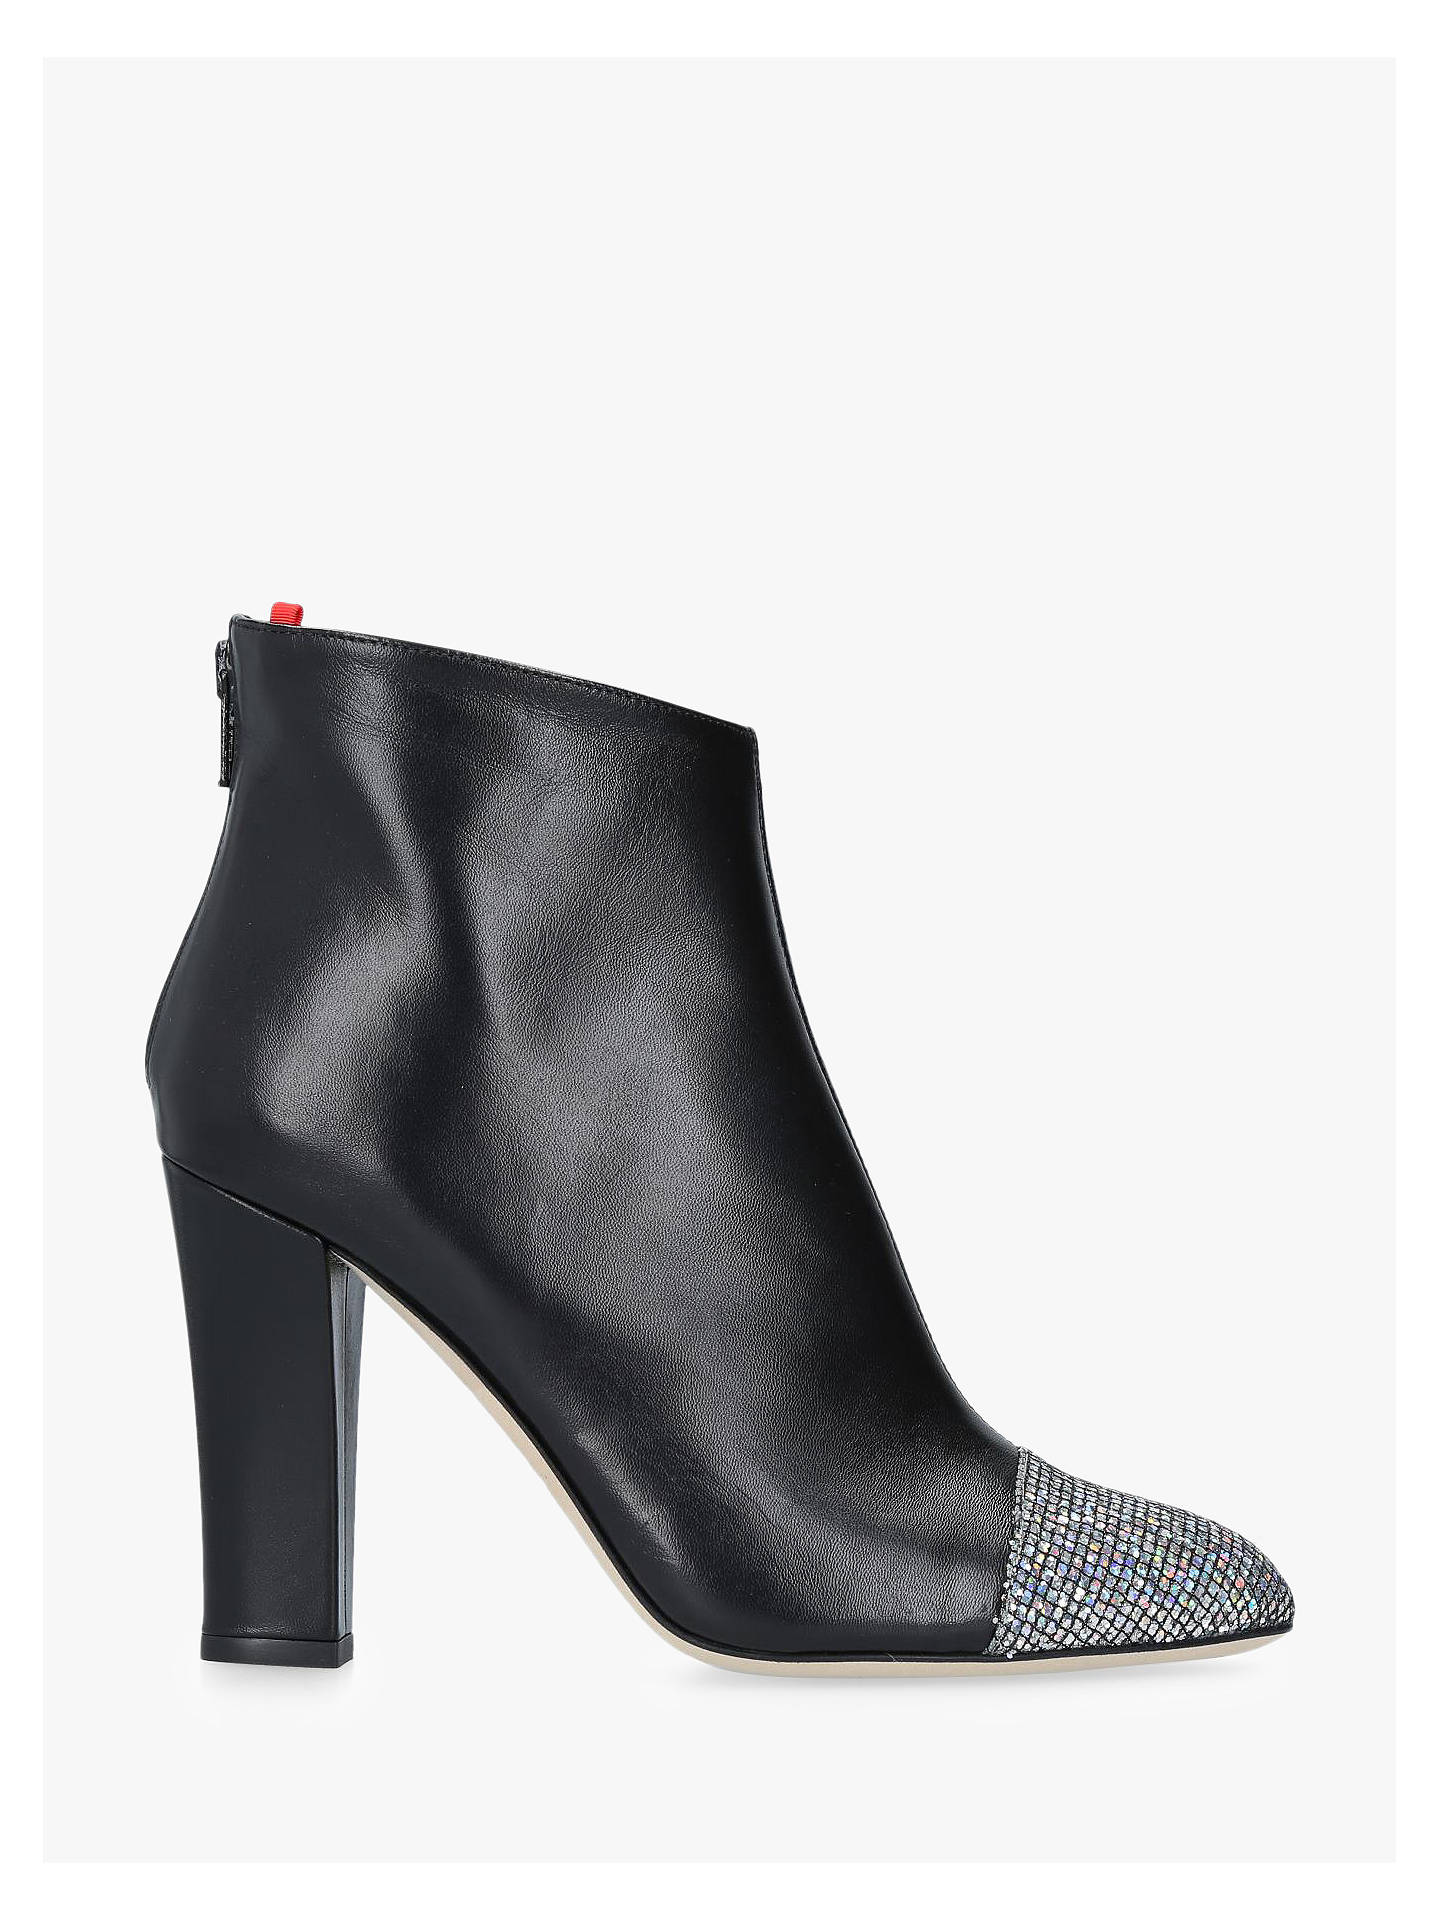 Buy SJP by Sarah Jessica Parker Rumi Glitter Toe Ankle Boots, Black Leather, 2 Online at johnlewis.com